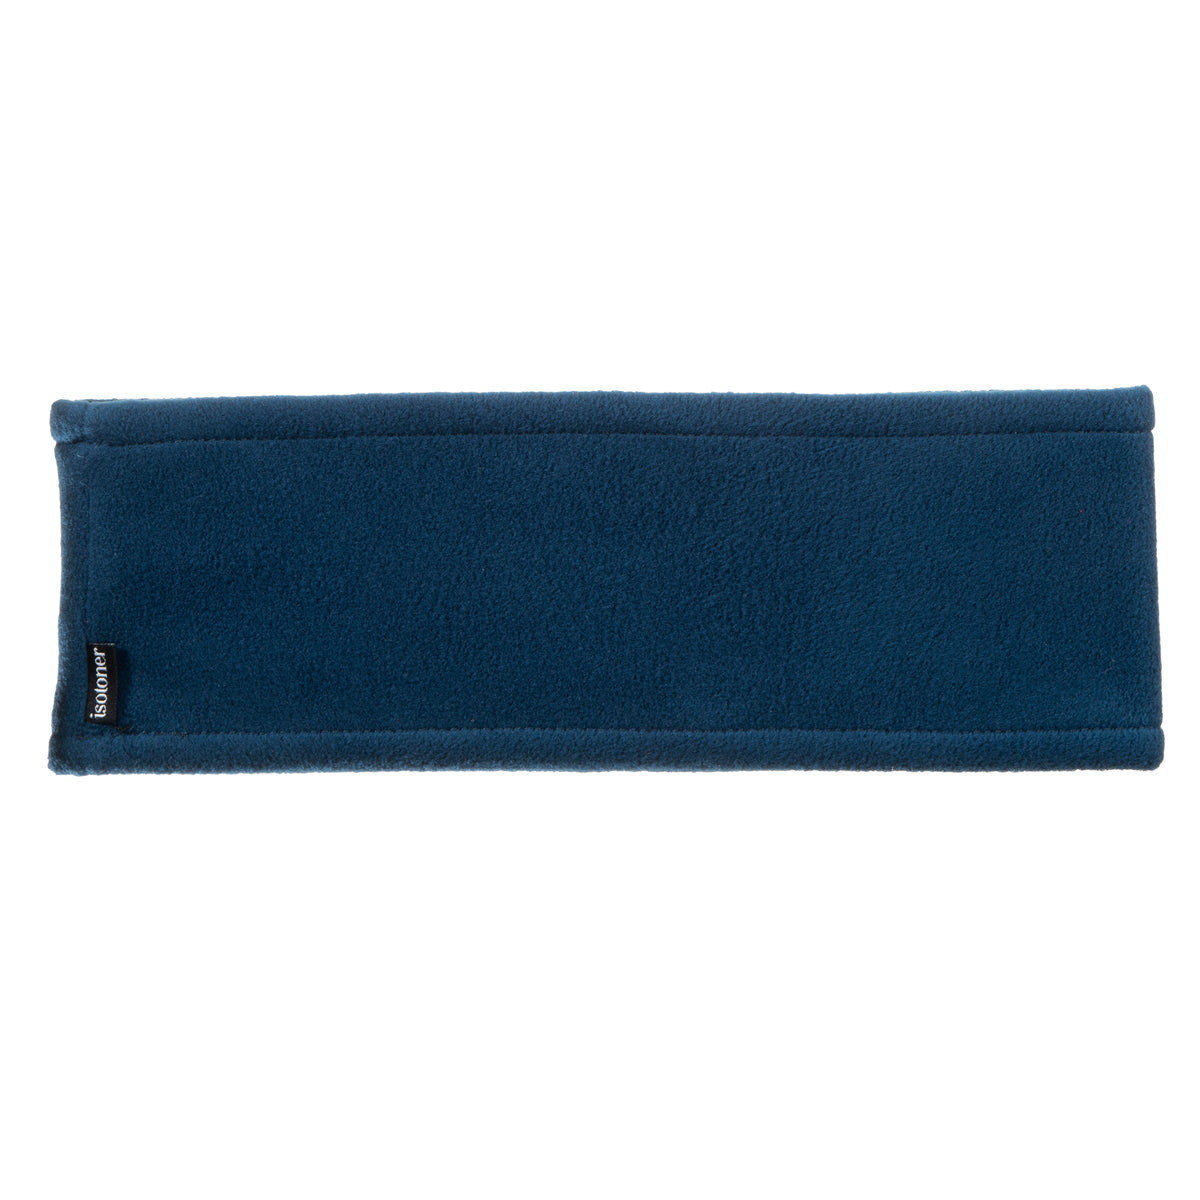 Women's Reversible Fleece Headband in Navy Blue